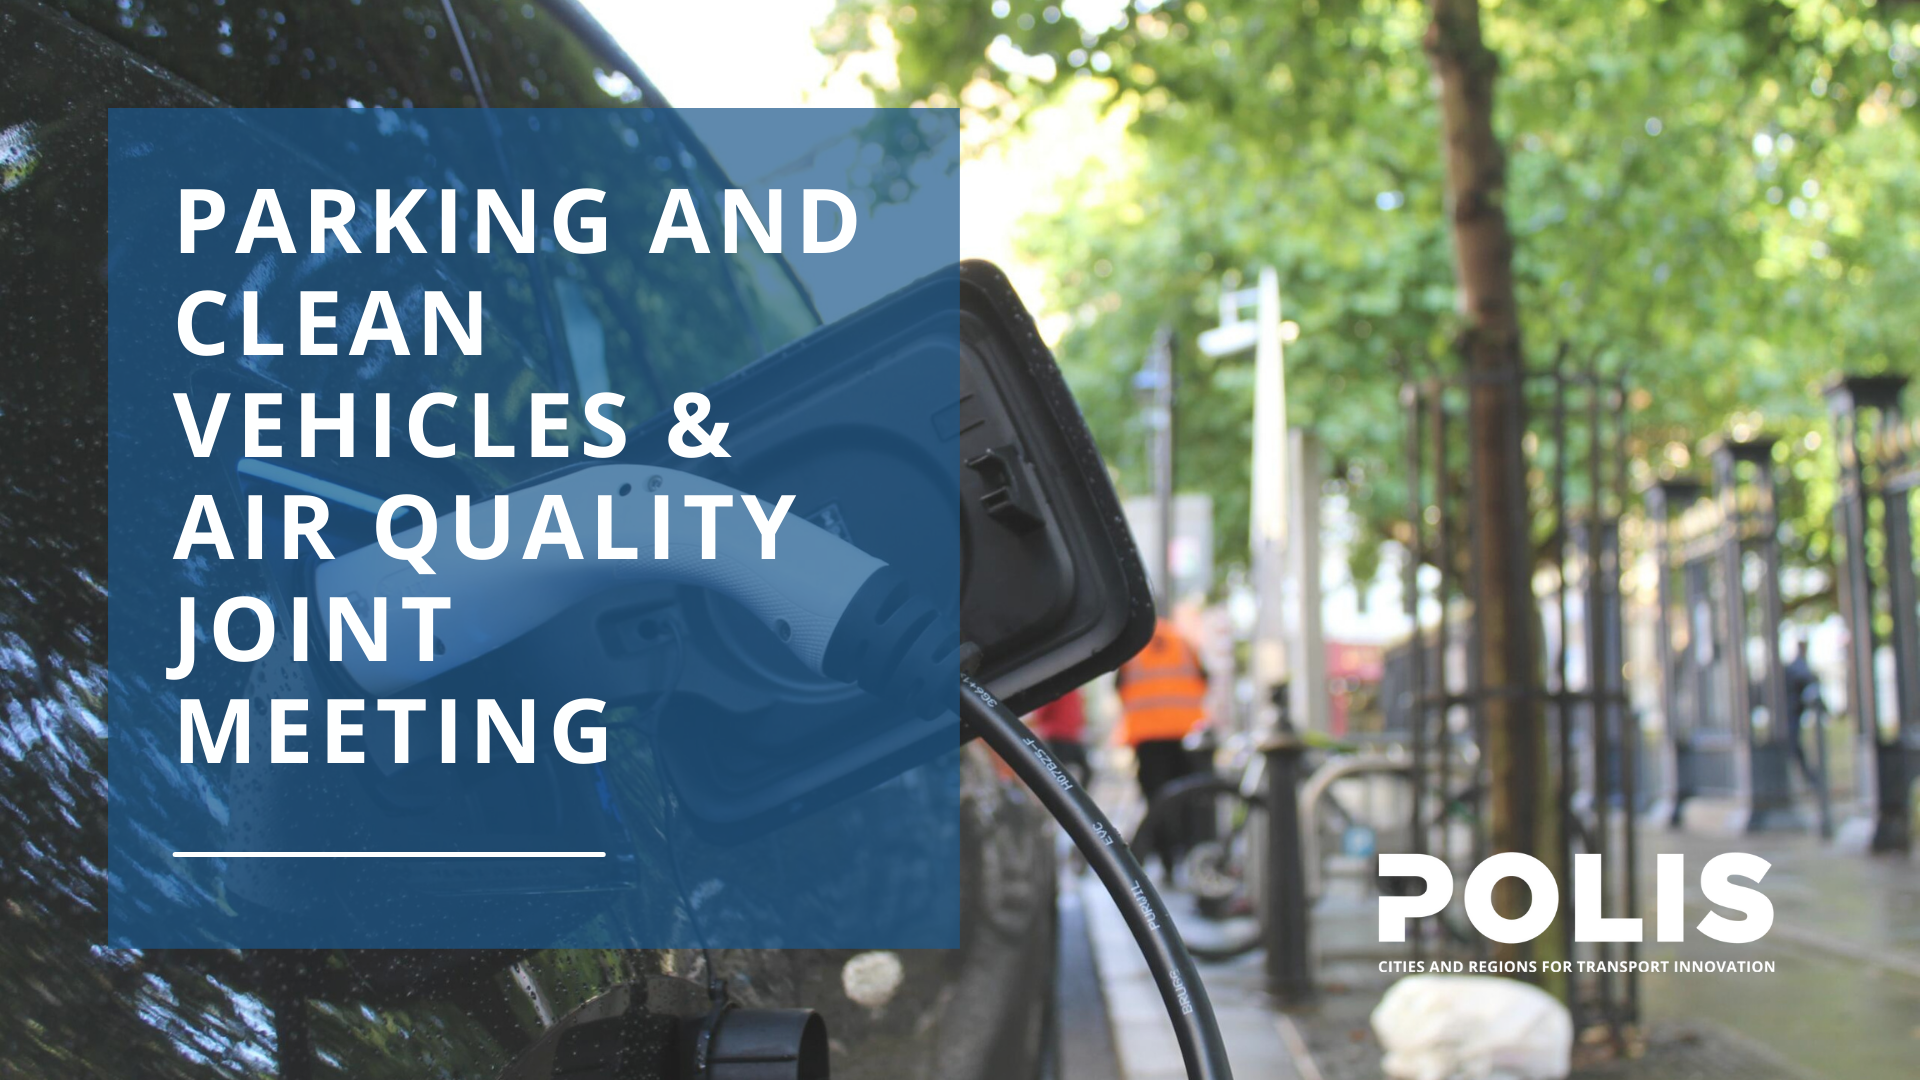 Joint POLIS Parking and Clean Vehicles & Air Quality Working Group meeting